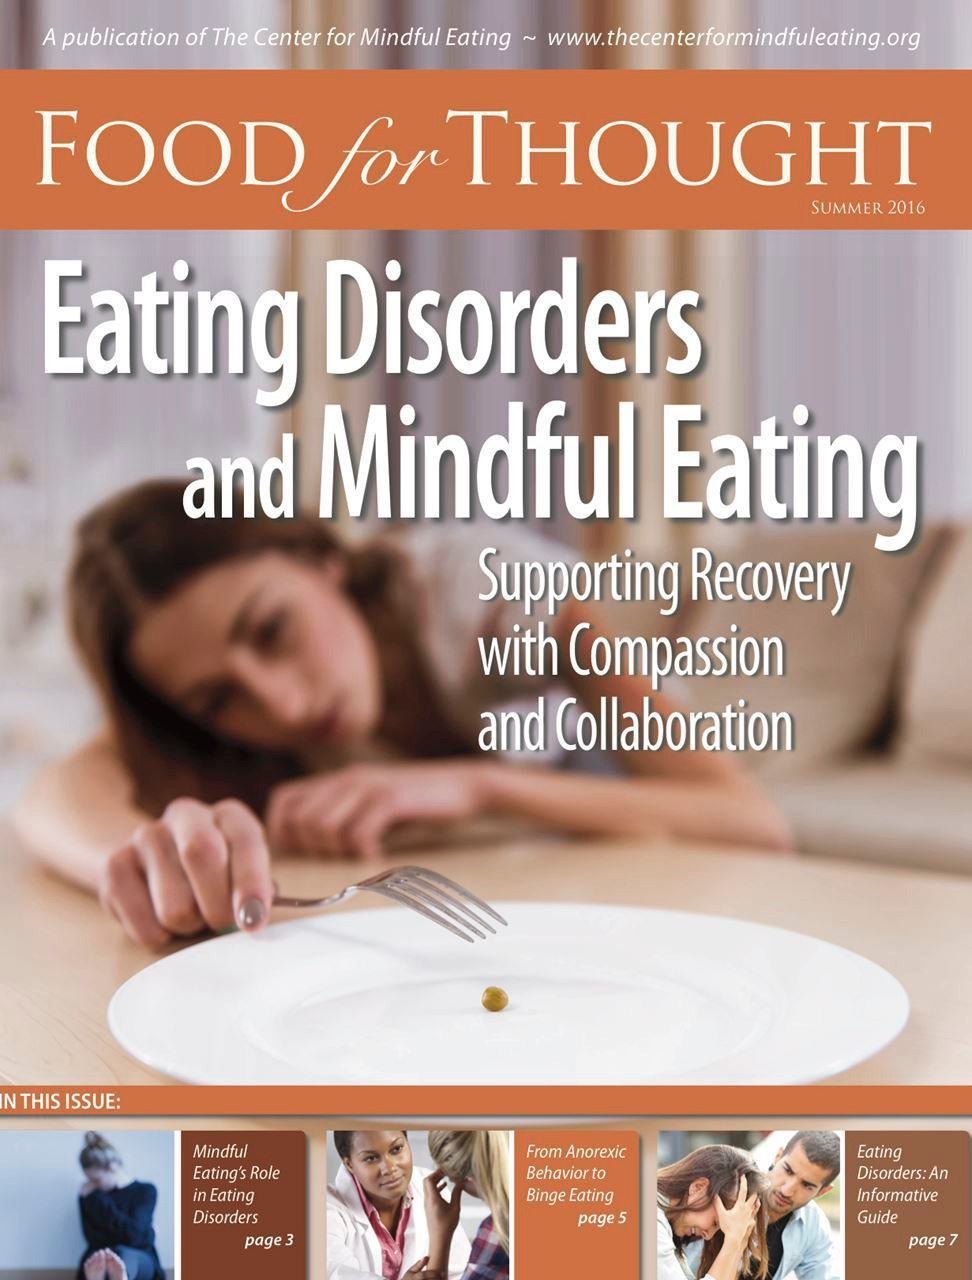 Food for Thought Summer 2016: Eating Disorders